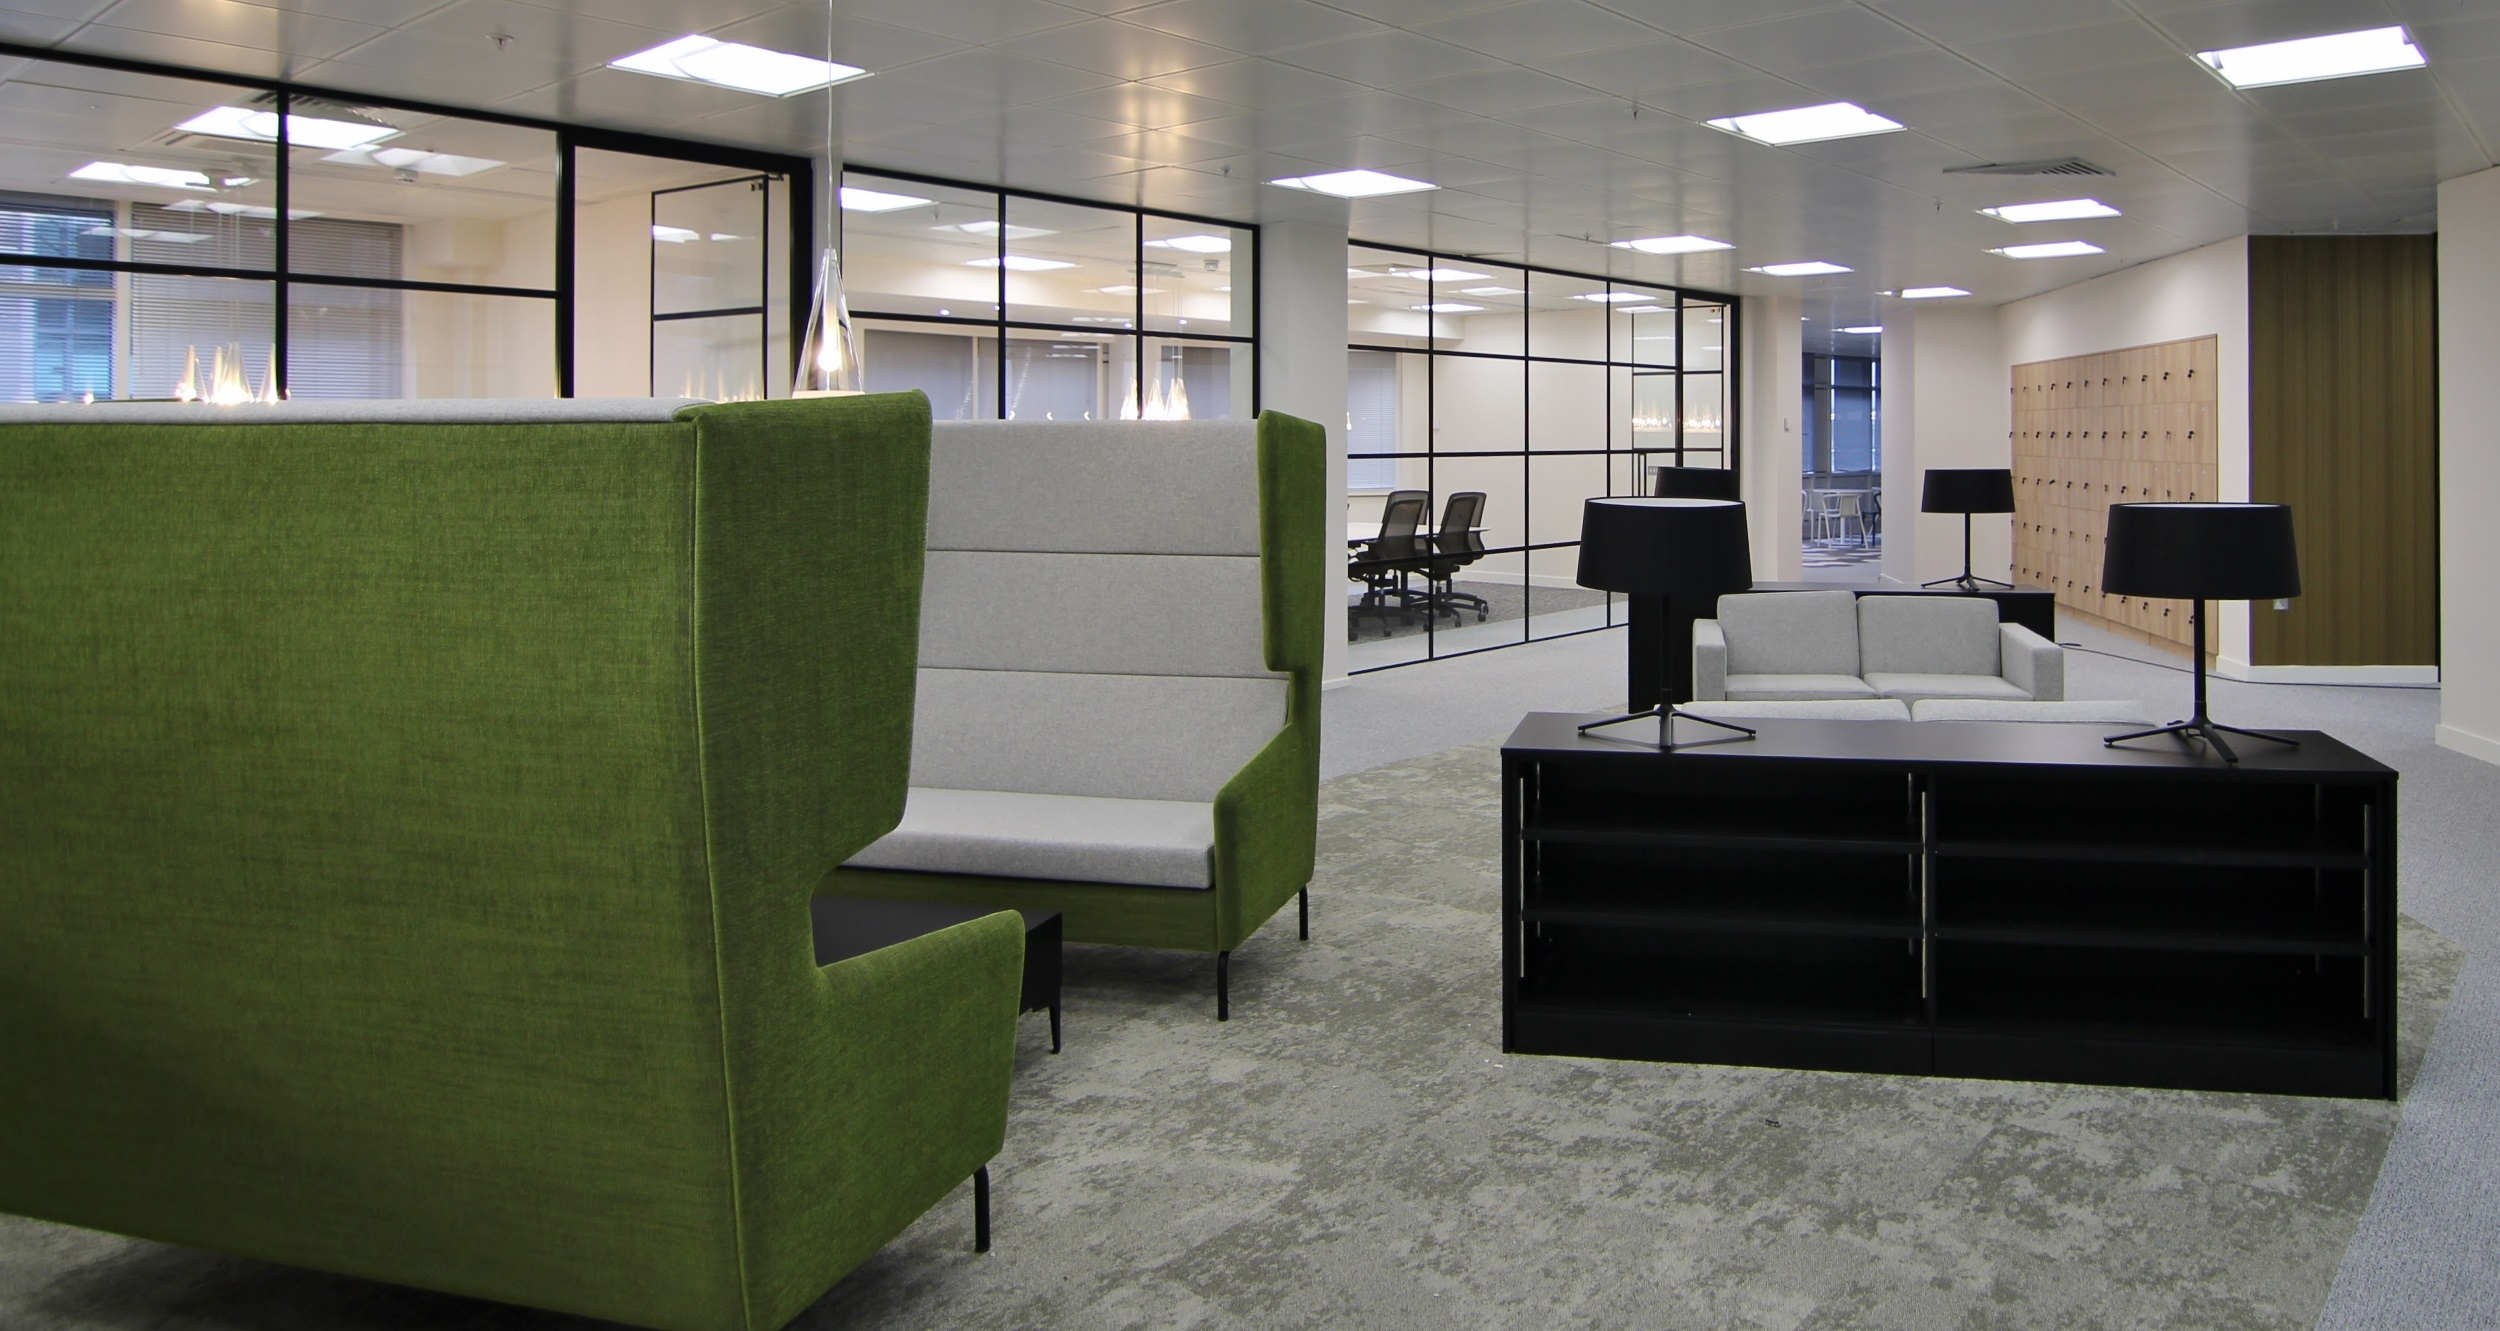 large green chairs